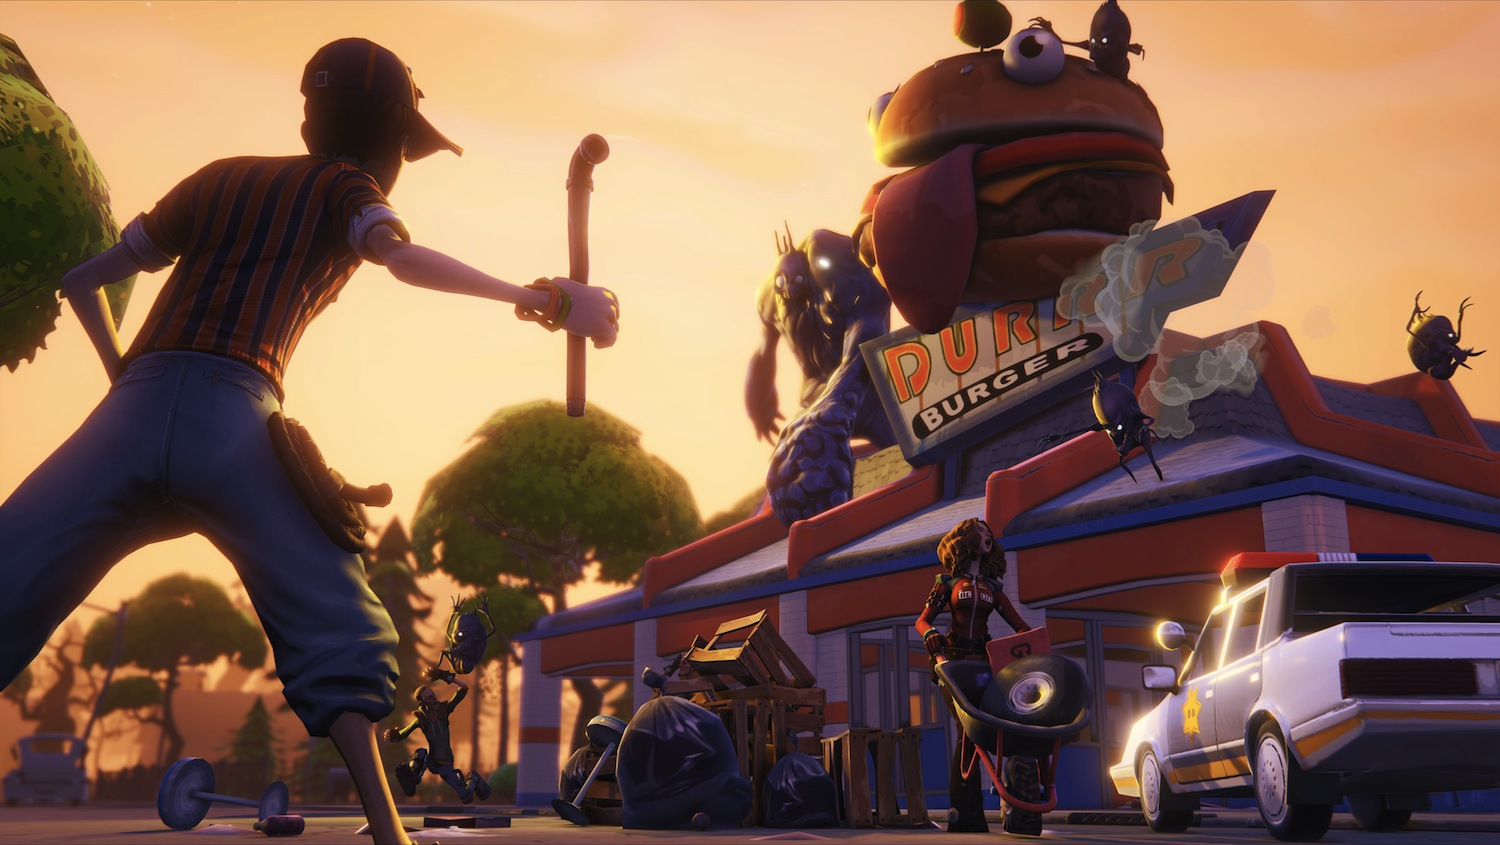 Unreal Engine 4 debuteaza cu Fortnite